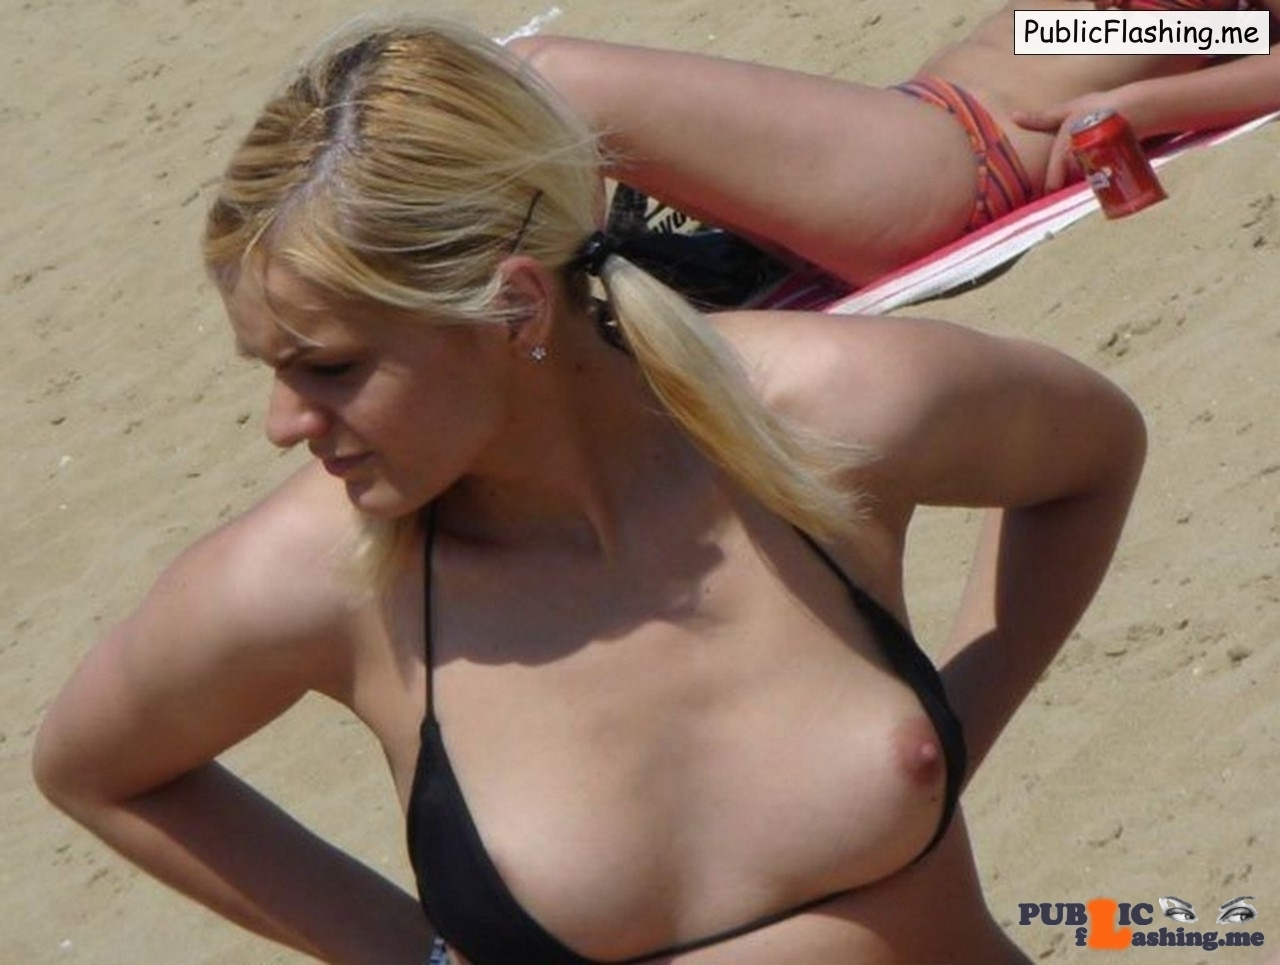 Beach nipple slips downblouse